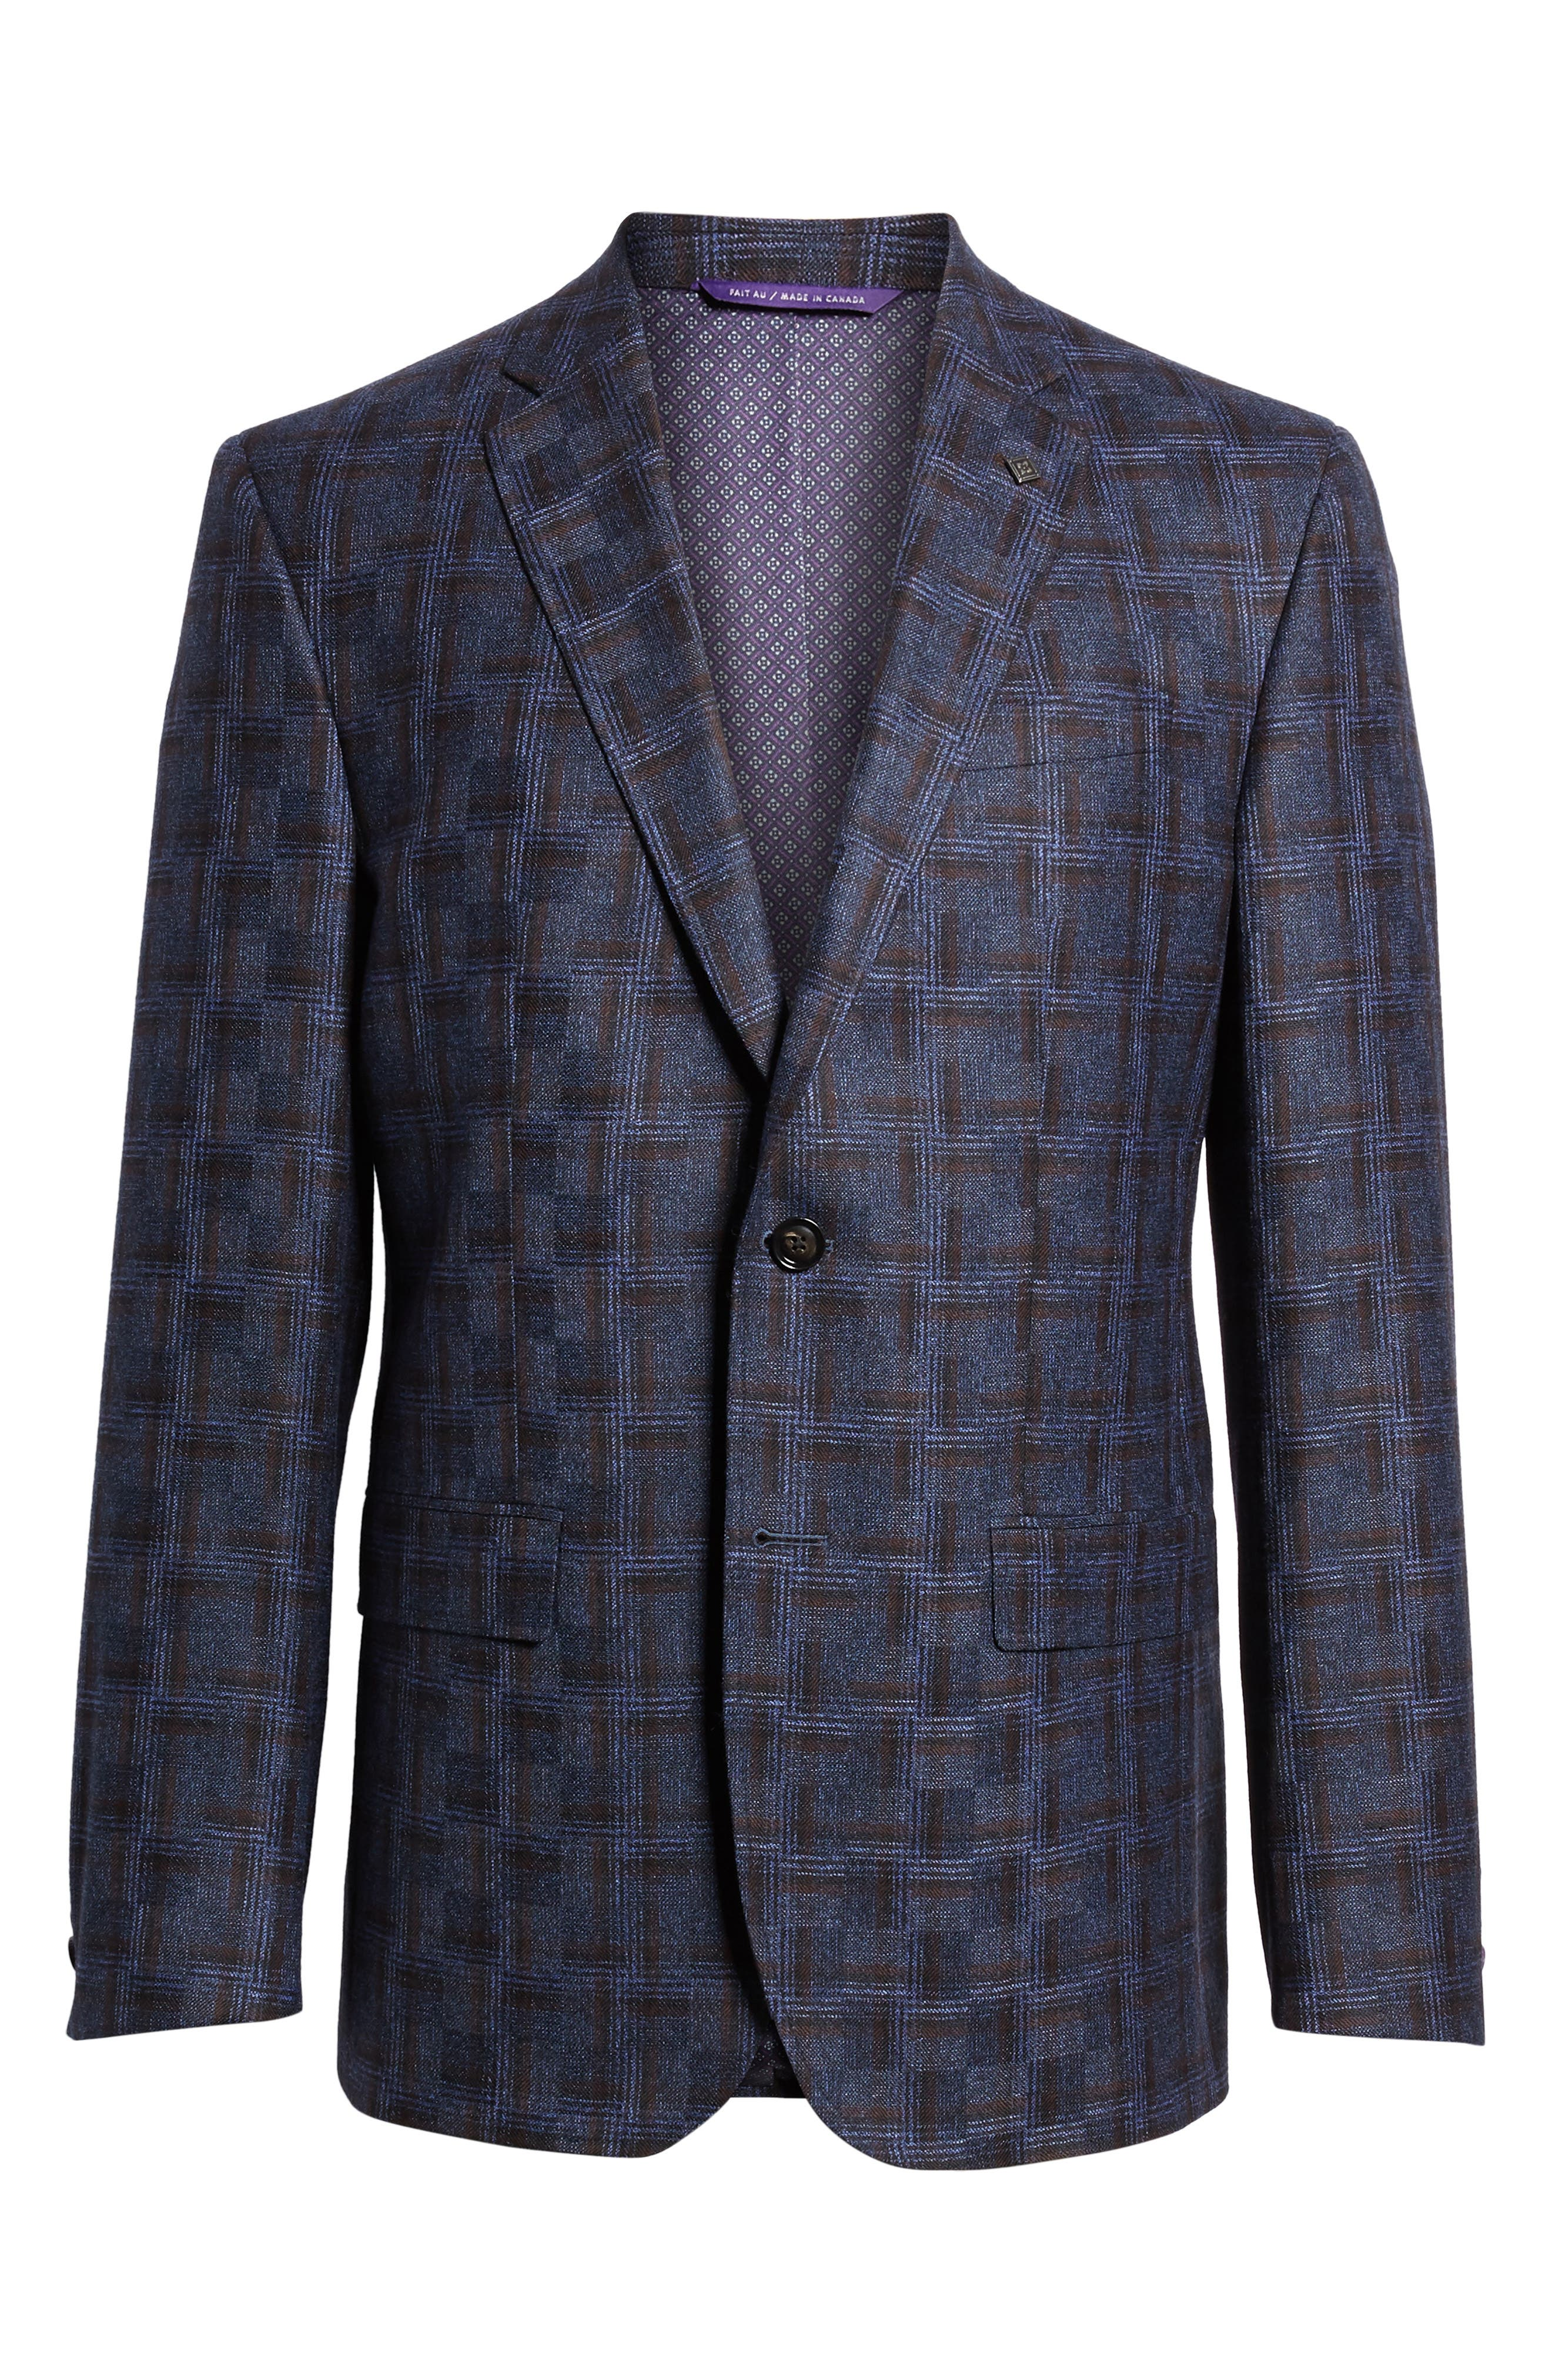 Jay Trim Fit Plaid Wool Sport Coat,                             Alternate thumbnail 5, color,